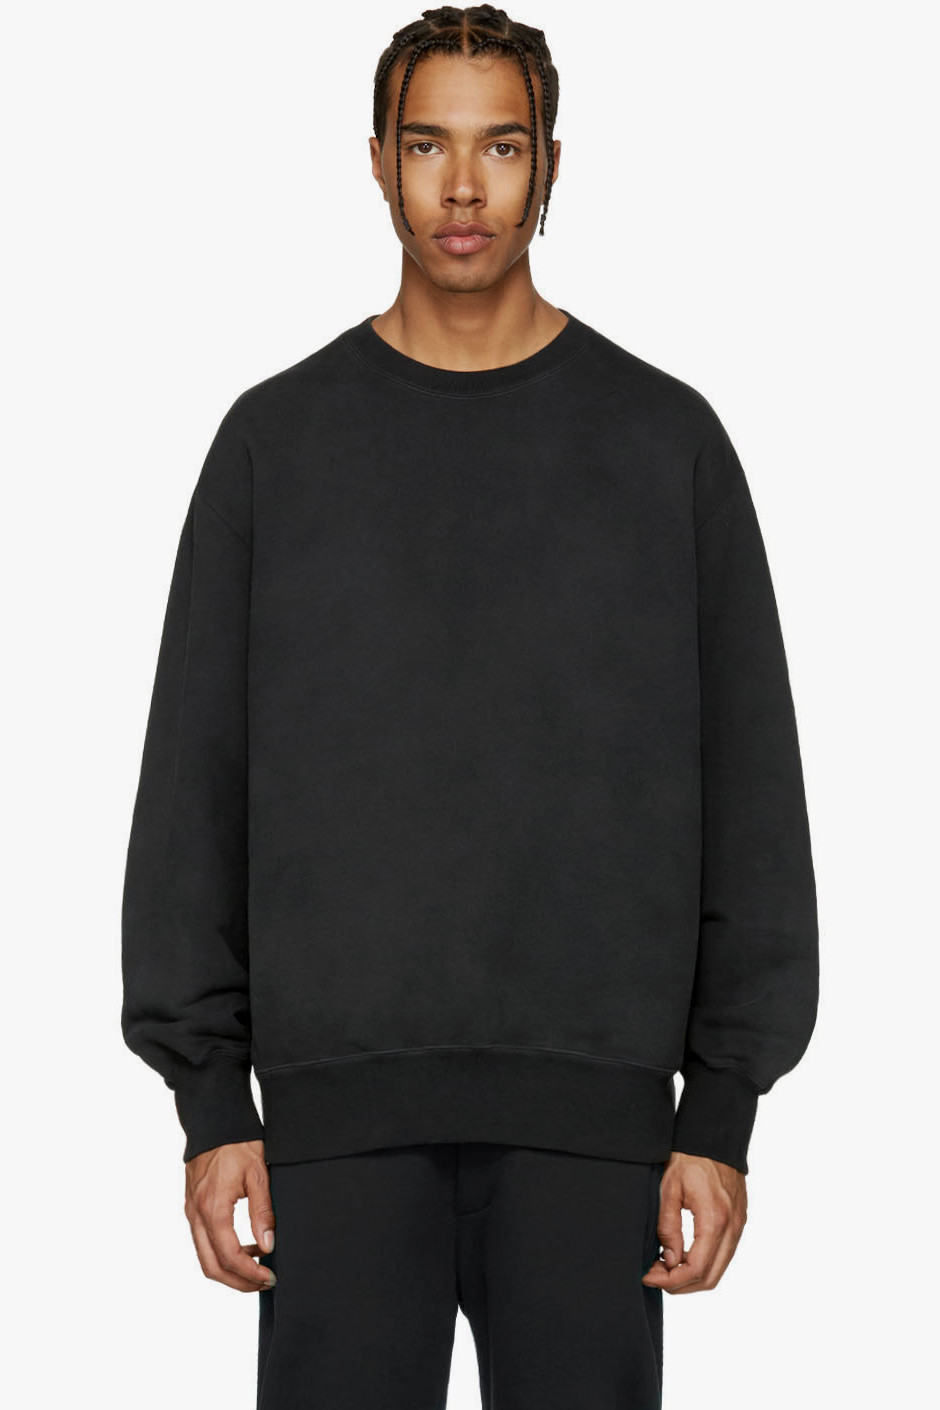 YEEZY Season 4 Collection Now Available